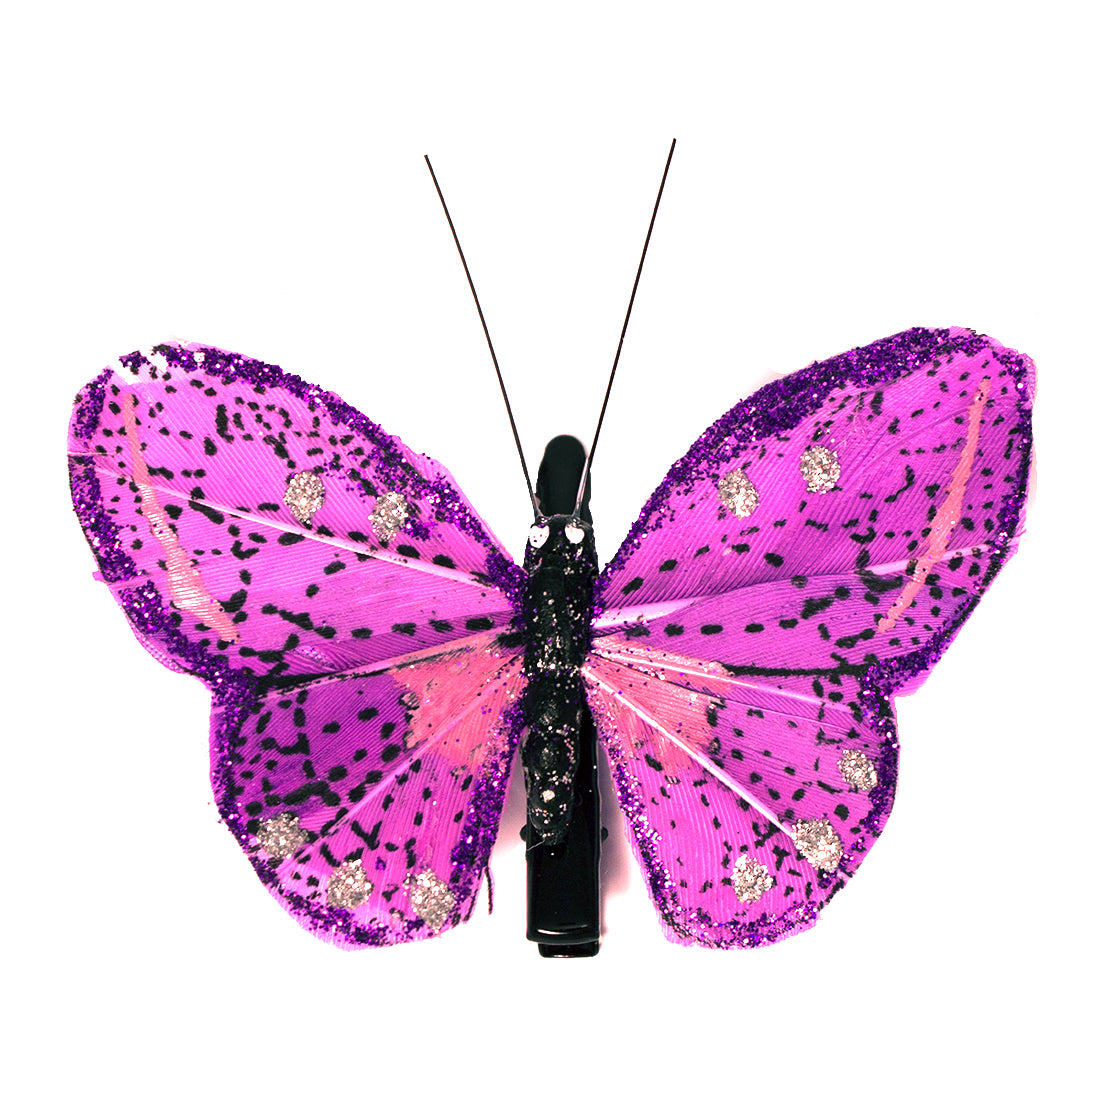 Mia® Butterfly Barrette  - purple color - 1 piece - designed by #Mia Kaminski of Mia Beauty